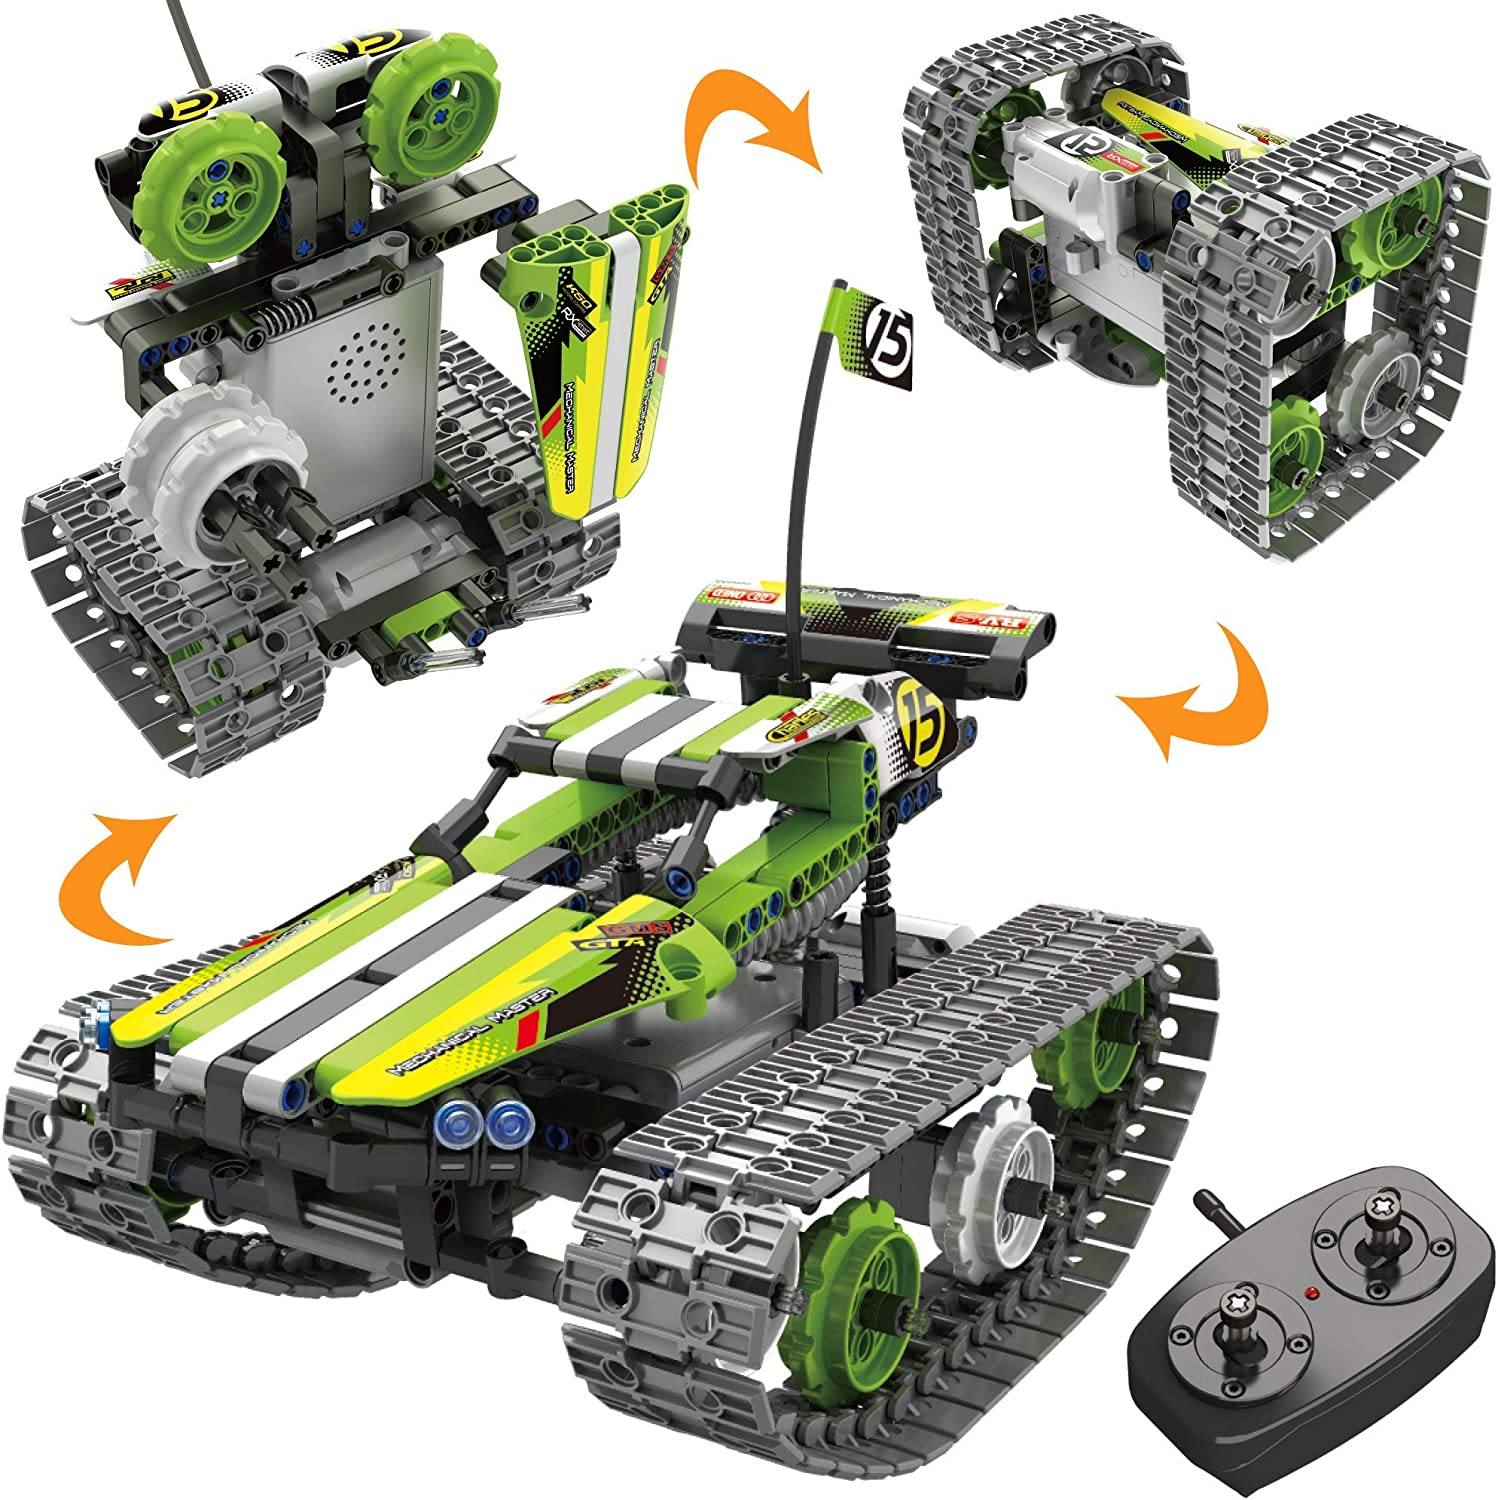 Amazon Com Stem Toys Remote Control Building Sets For Boys 8 12 Years Old 3 In 1 Rc Engineering Kit Builds Tracked Car Robot Tank 2 4ghz Rechargeable Rc Racer Toy Set Best Science Learning Kit Gift For Kids